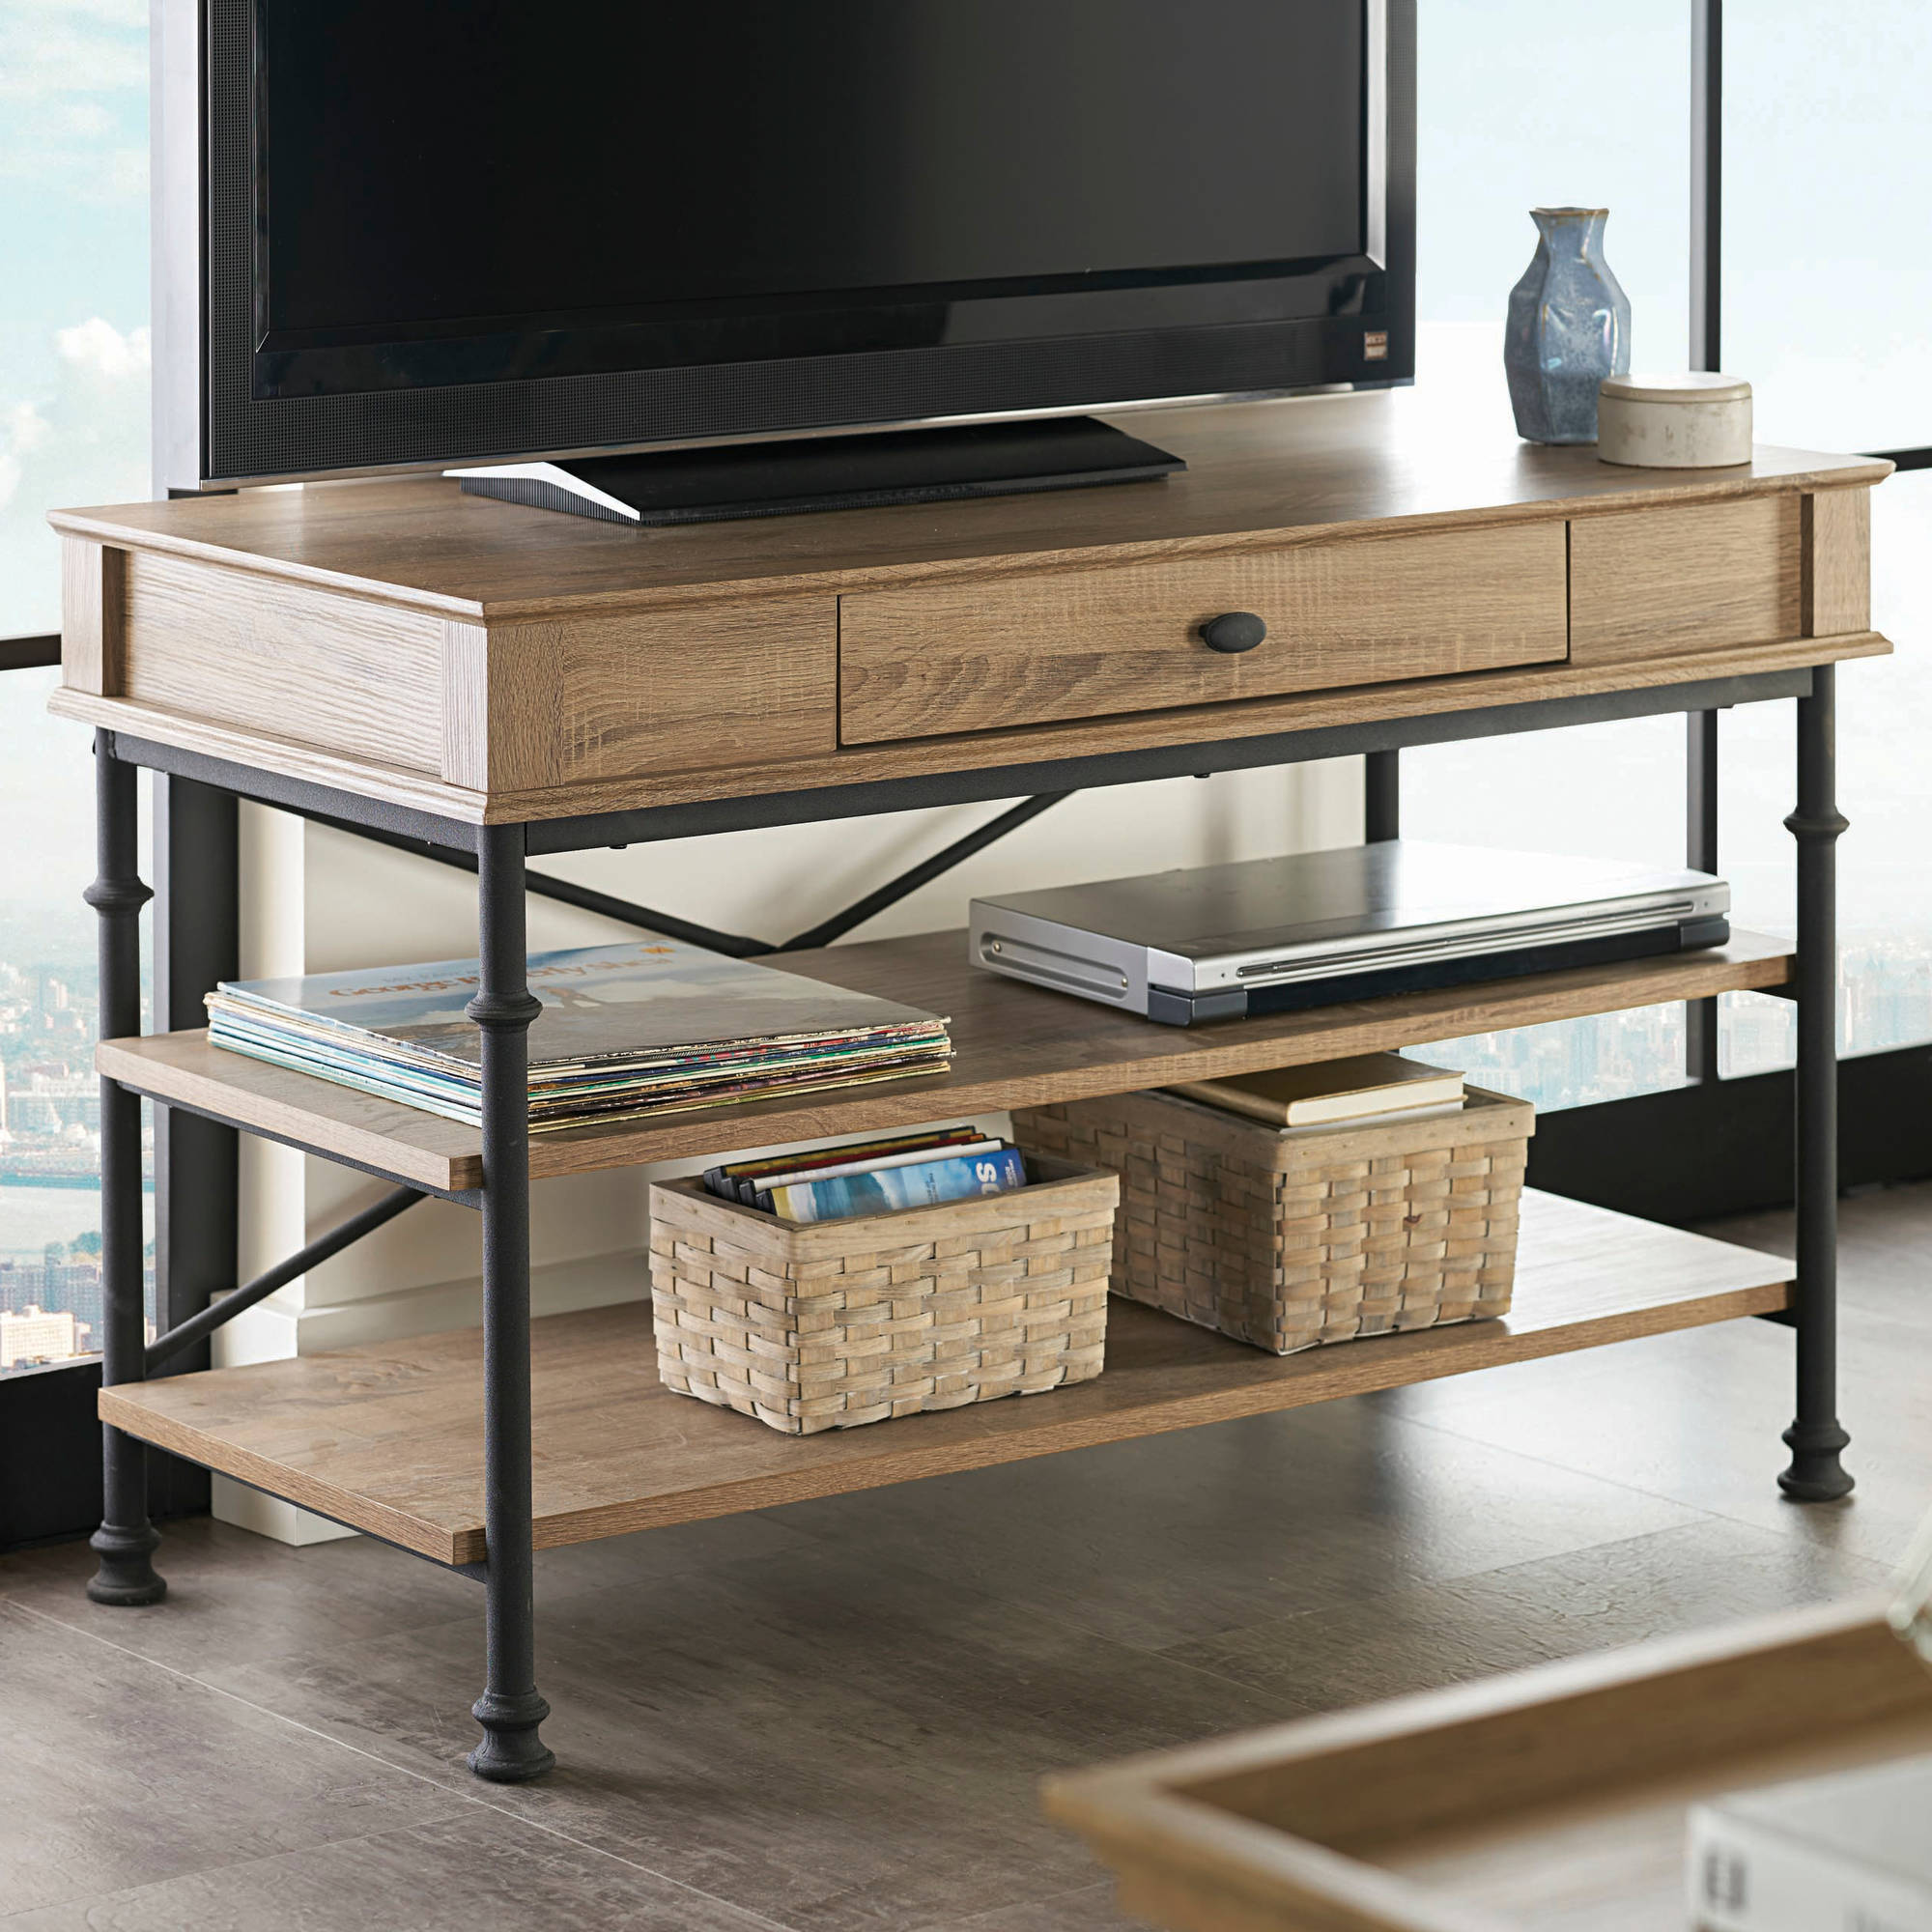 Sarah Tv Stands Better Homes And Gardens River Crest Tv Stand For Tvs Up To 42 39 39 Rustic Oak Finish